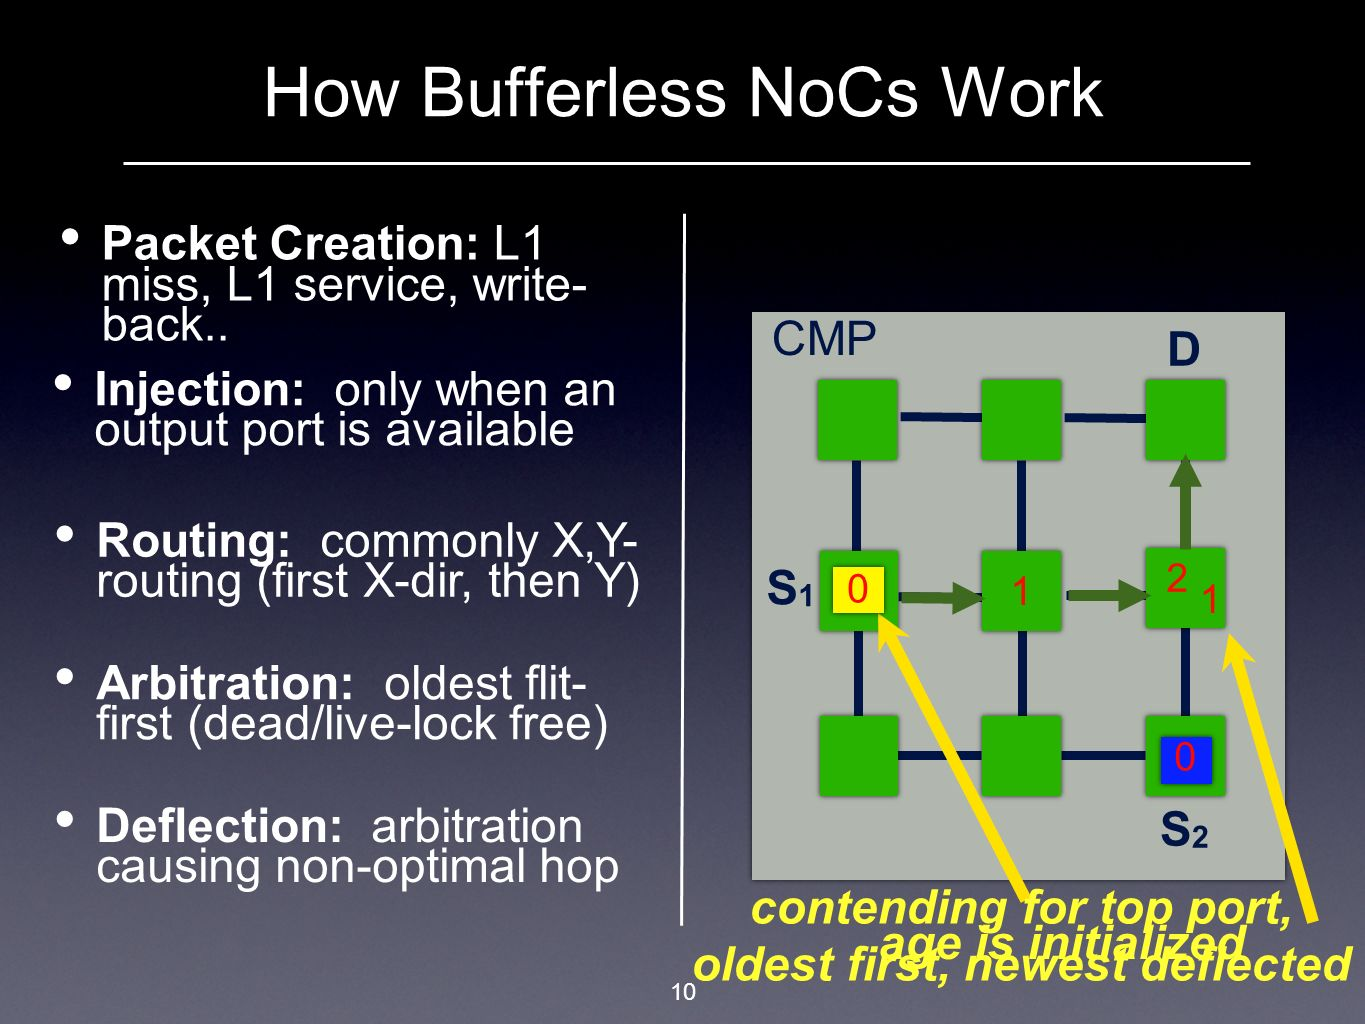 How Bufferless NoCs Work